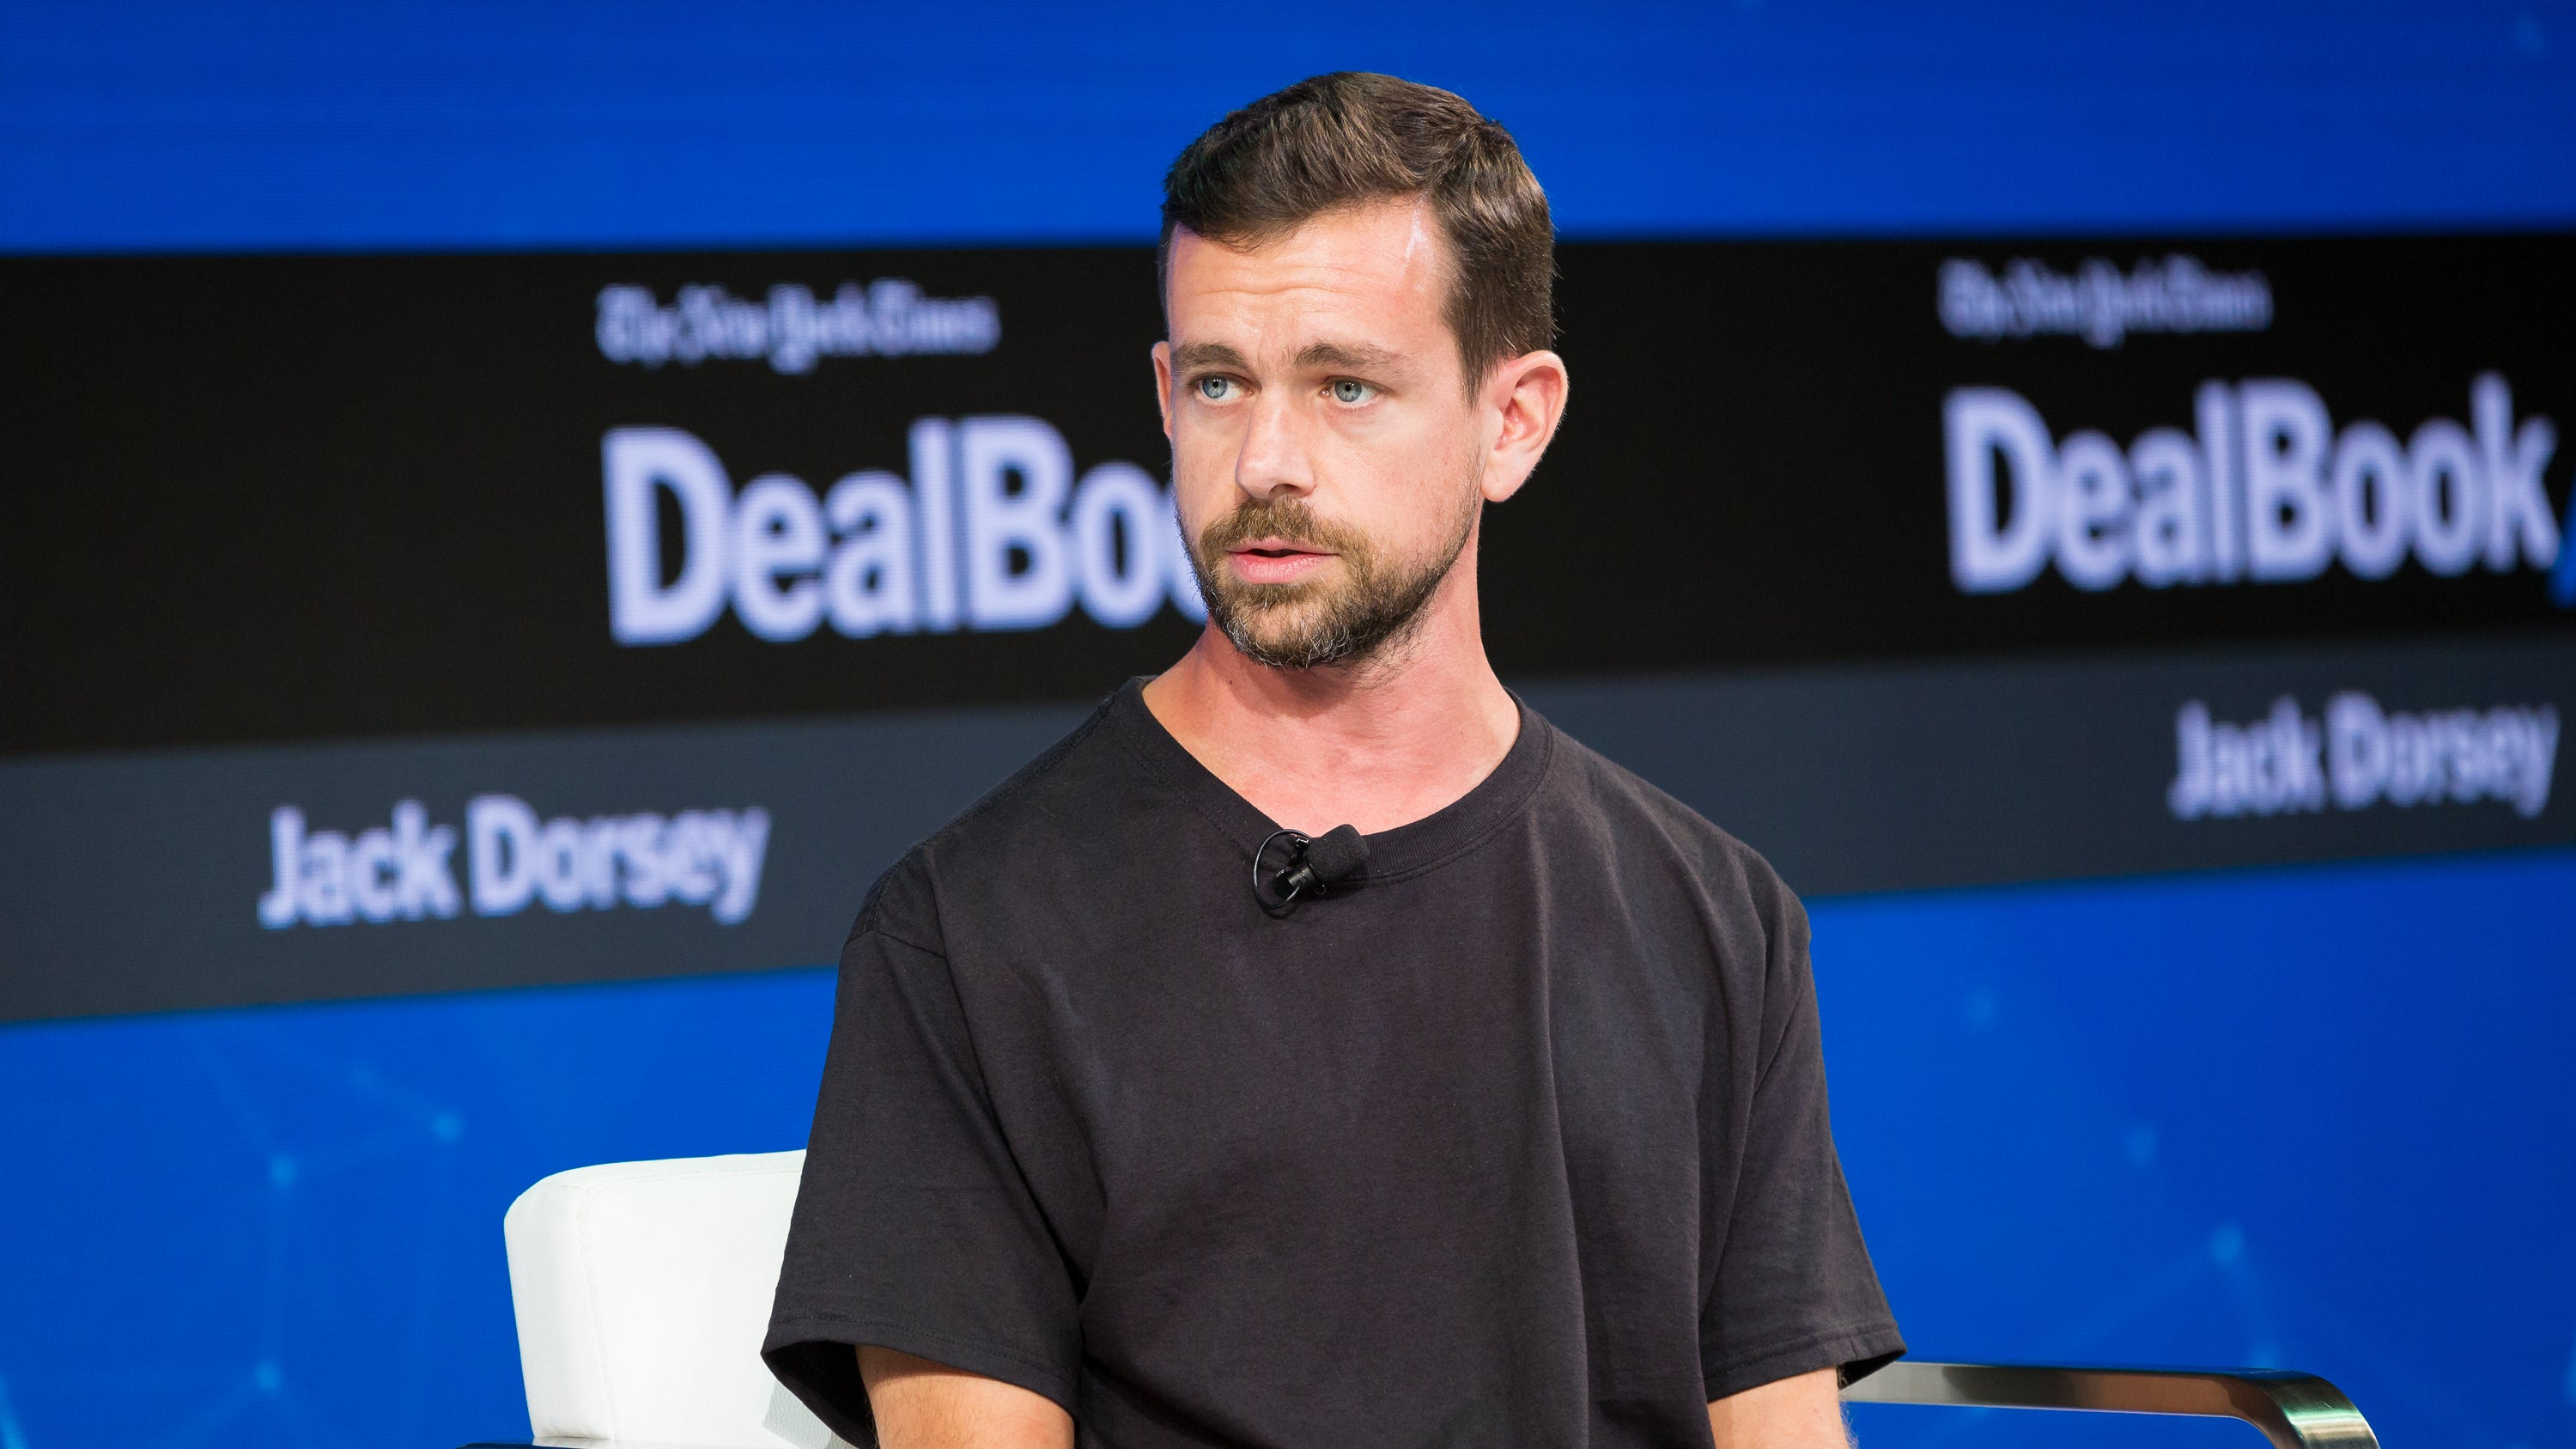 Twitter CEO To Call Bullshit On Claims Of Anti-GOP Censorship Before US Congress